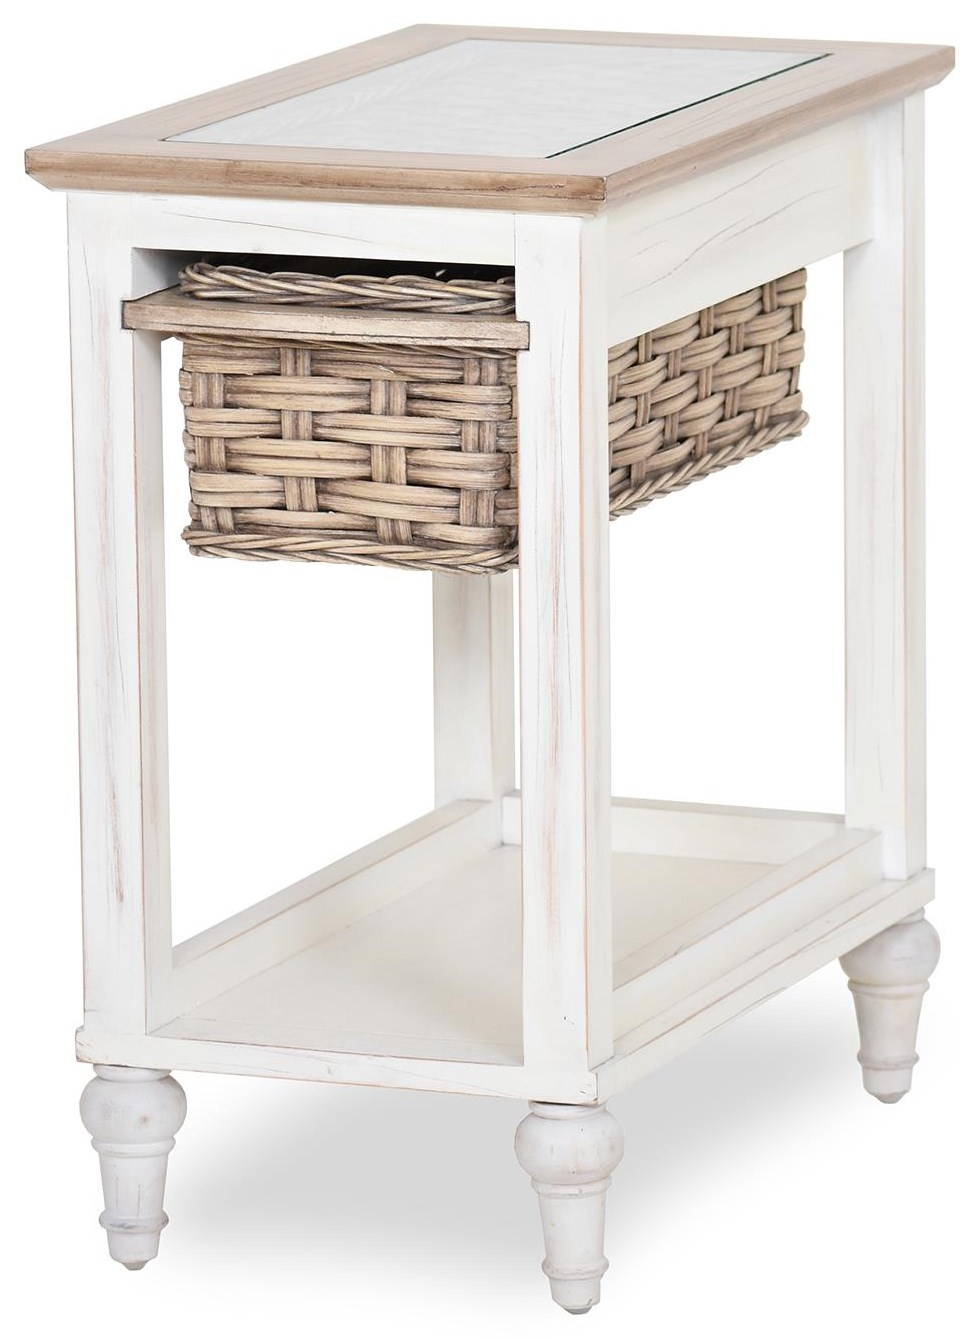 island breeze chair side table by Sea Winds Trading Company at Johnny Janosik